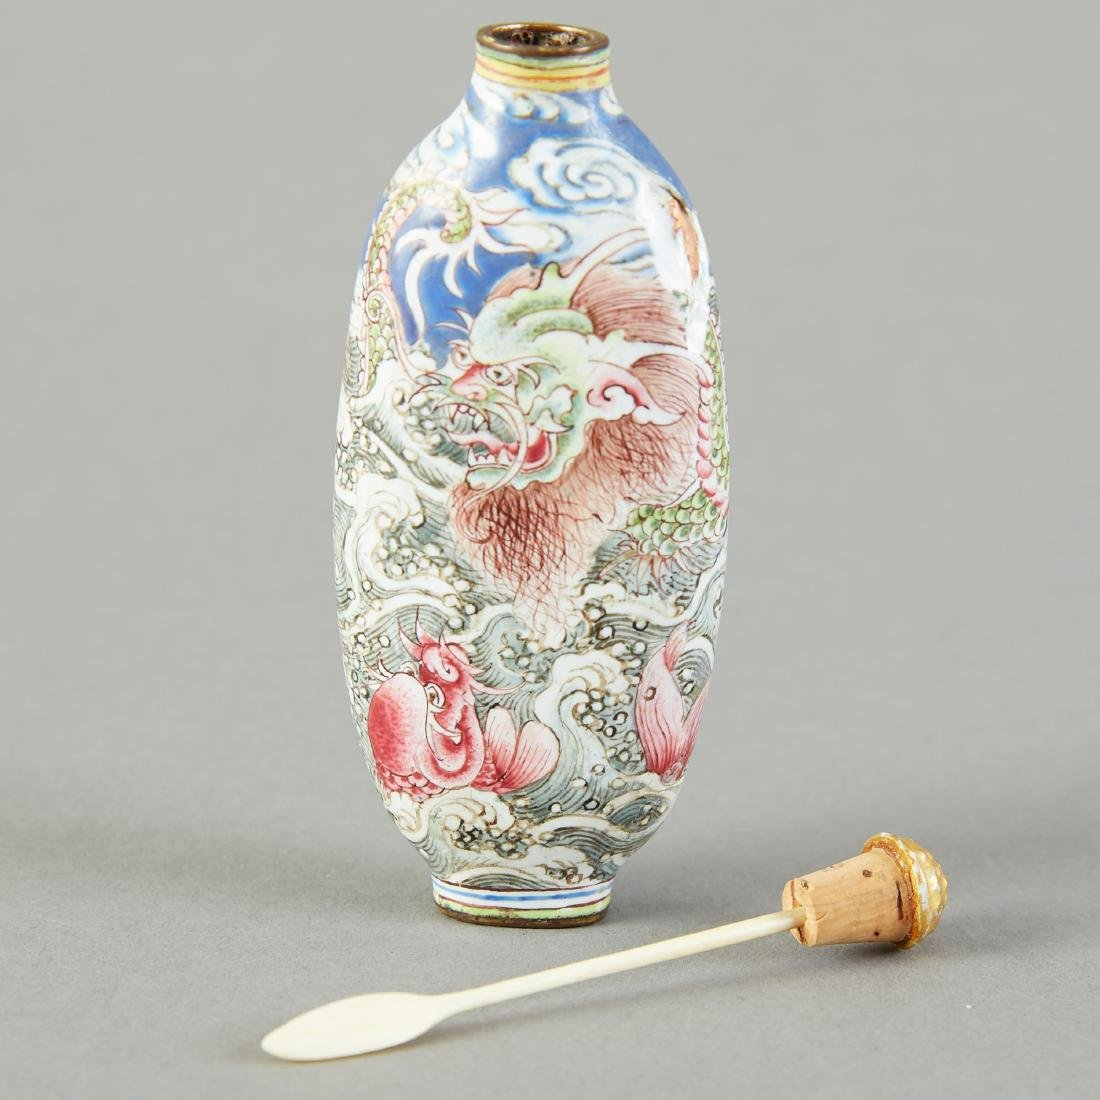 19th C. Chinese Qing Enameled Snuff Bottle Leaping Carp - 5